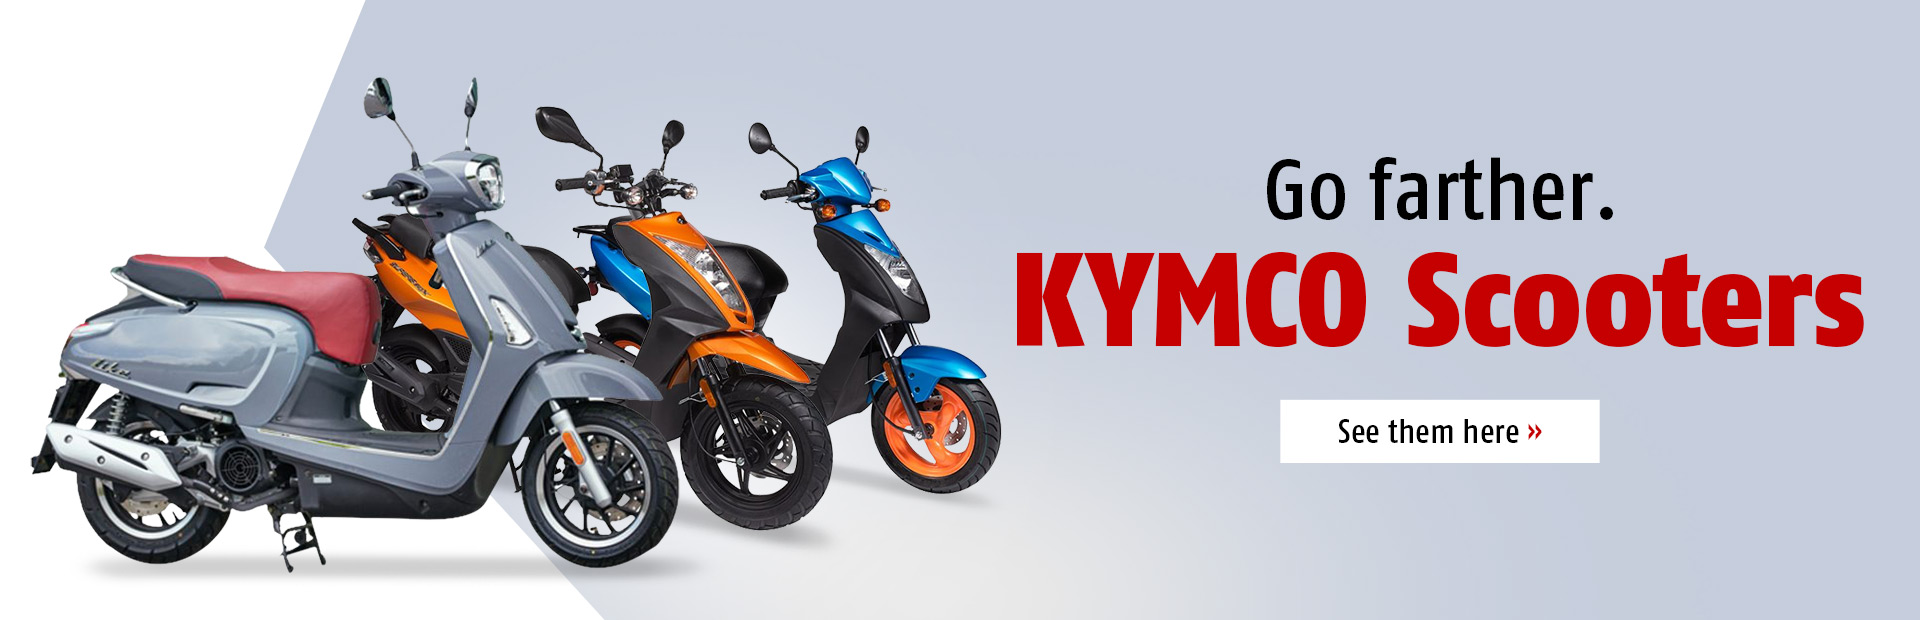 KYMCO Scooters: Click here to view the models.